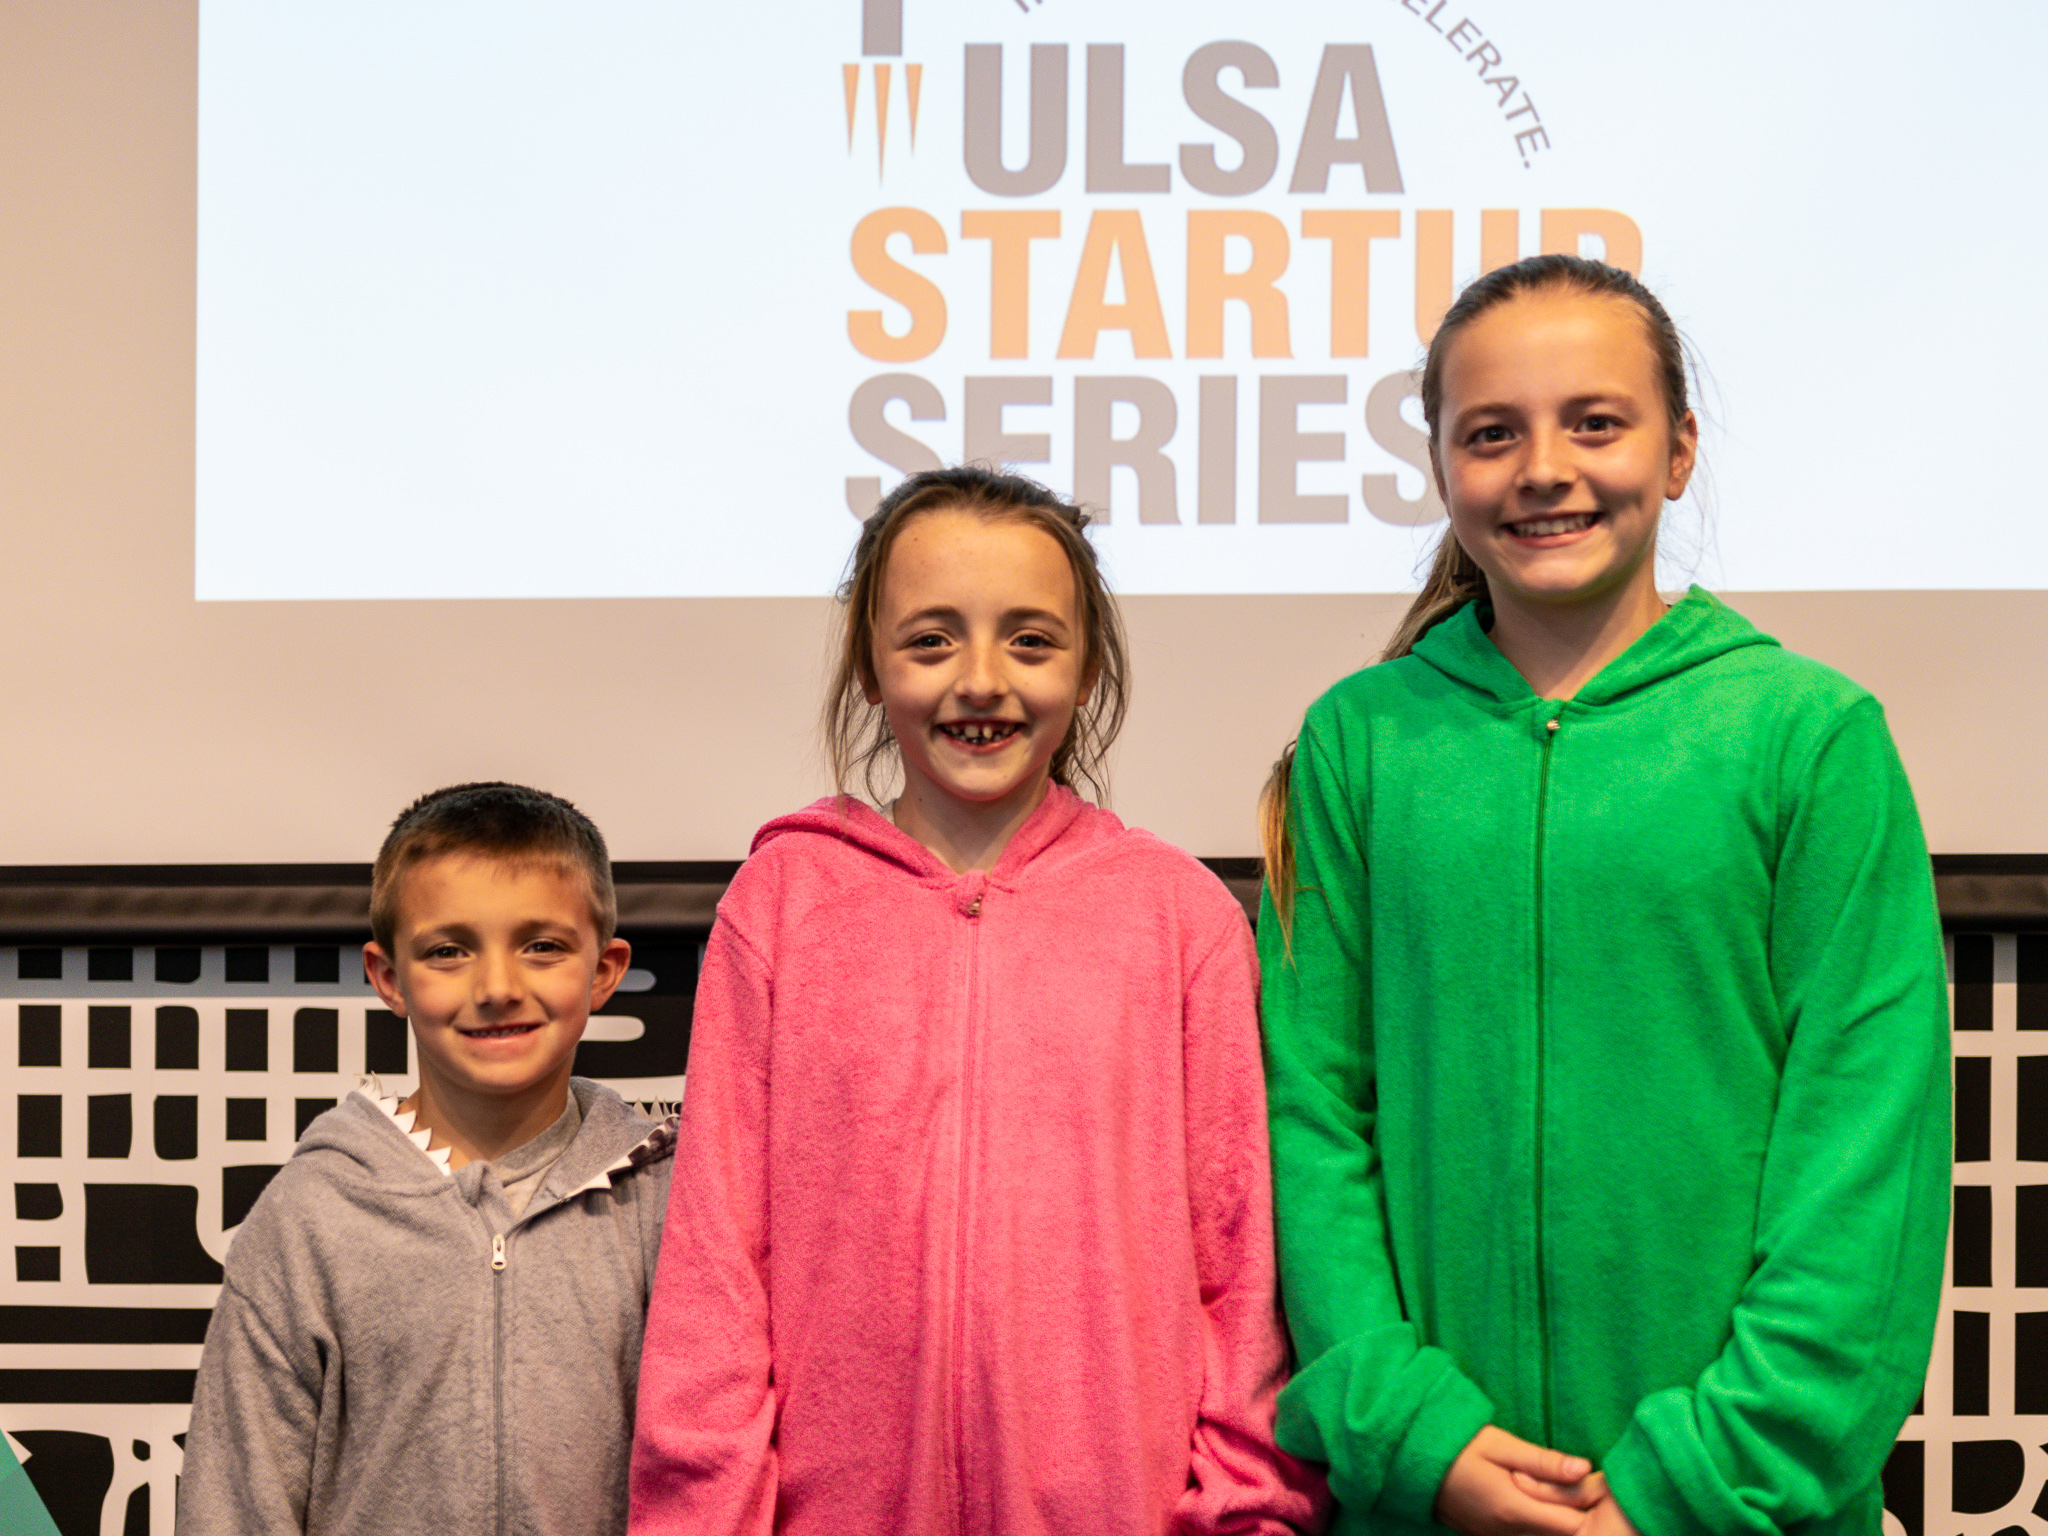 "The children of Angie Myers, founder of My ""Buddy"" Towel, model the product at the Tulsa Startup Series Live Pitch."